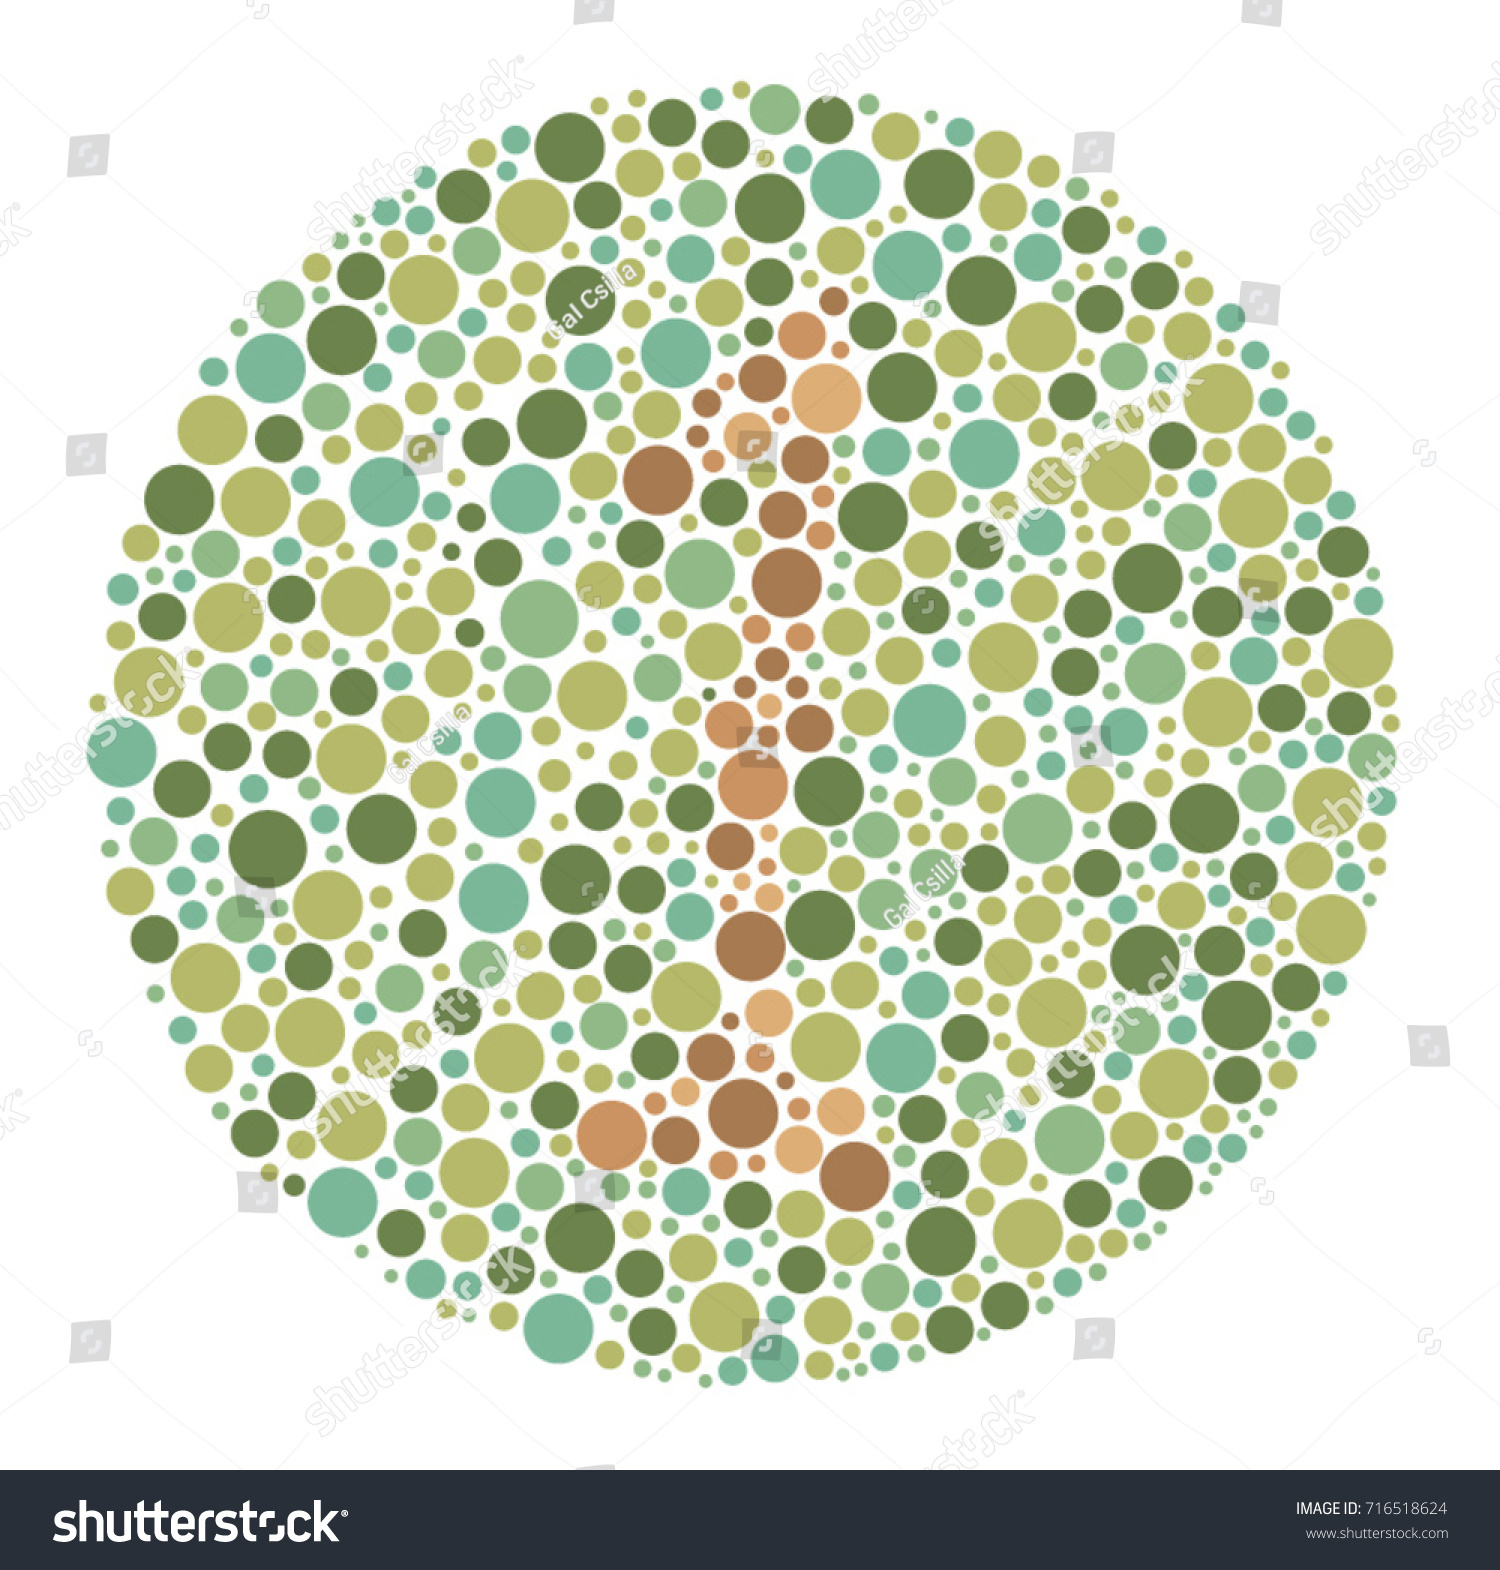 Ishihara Color Test Color Blind Test Stock Vector (Royalty Free ...